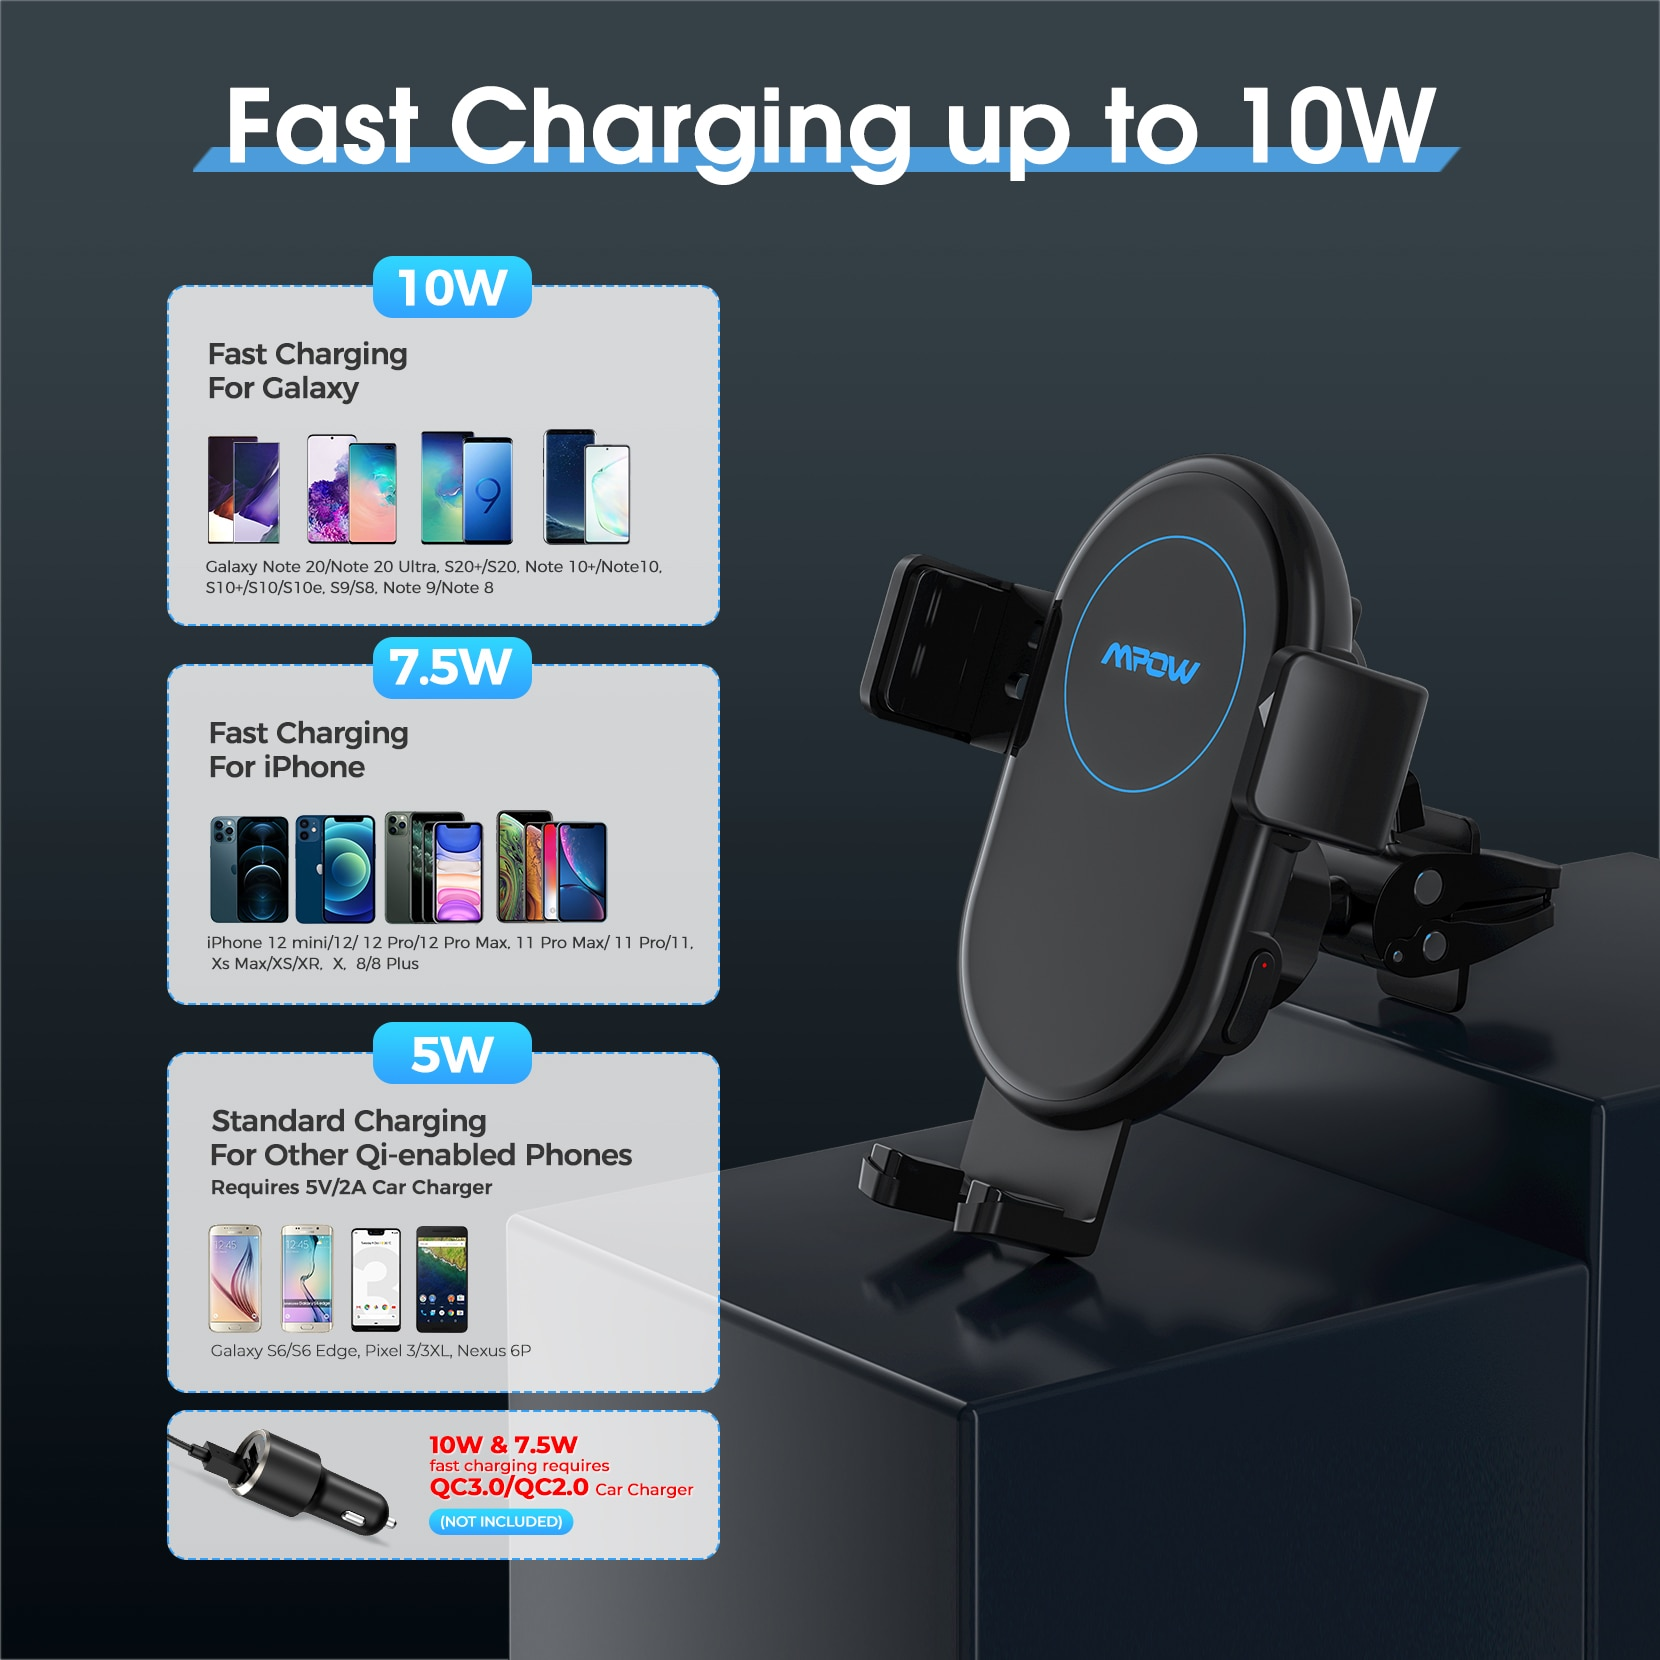 H053b9342ba9d4da8b0145ca6b51544db0 - MPOW CA164 Wireless Car Charger 10W Auto-clamping Qi Fast Charging Car Mount with Built-in Battery Cup Holder Vent Phone Holder